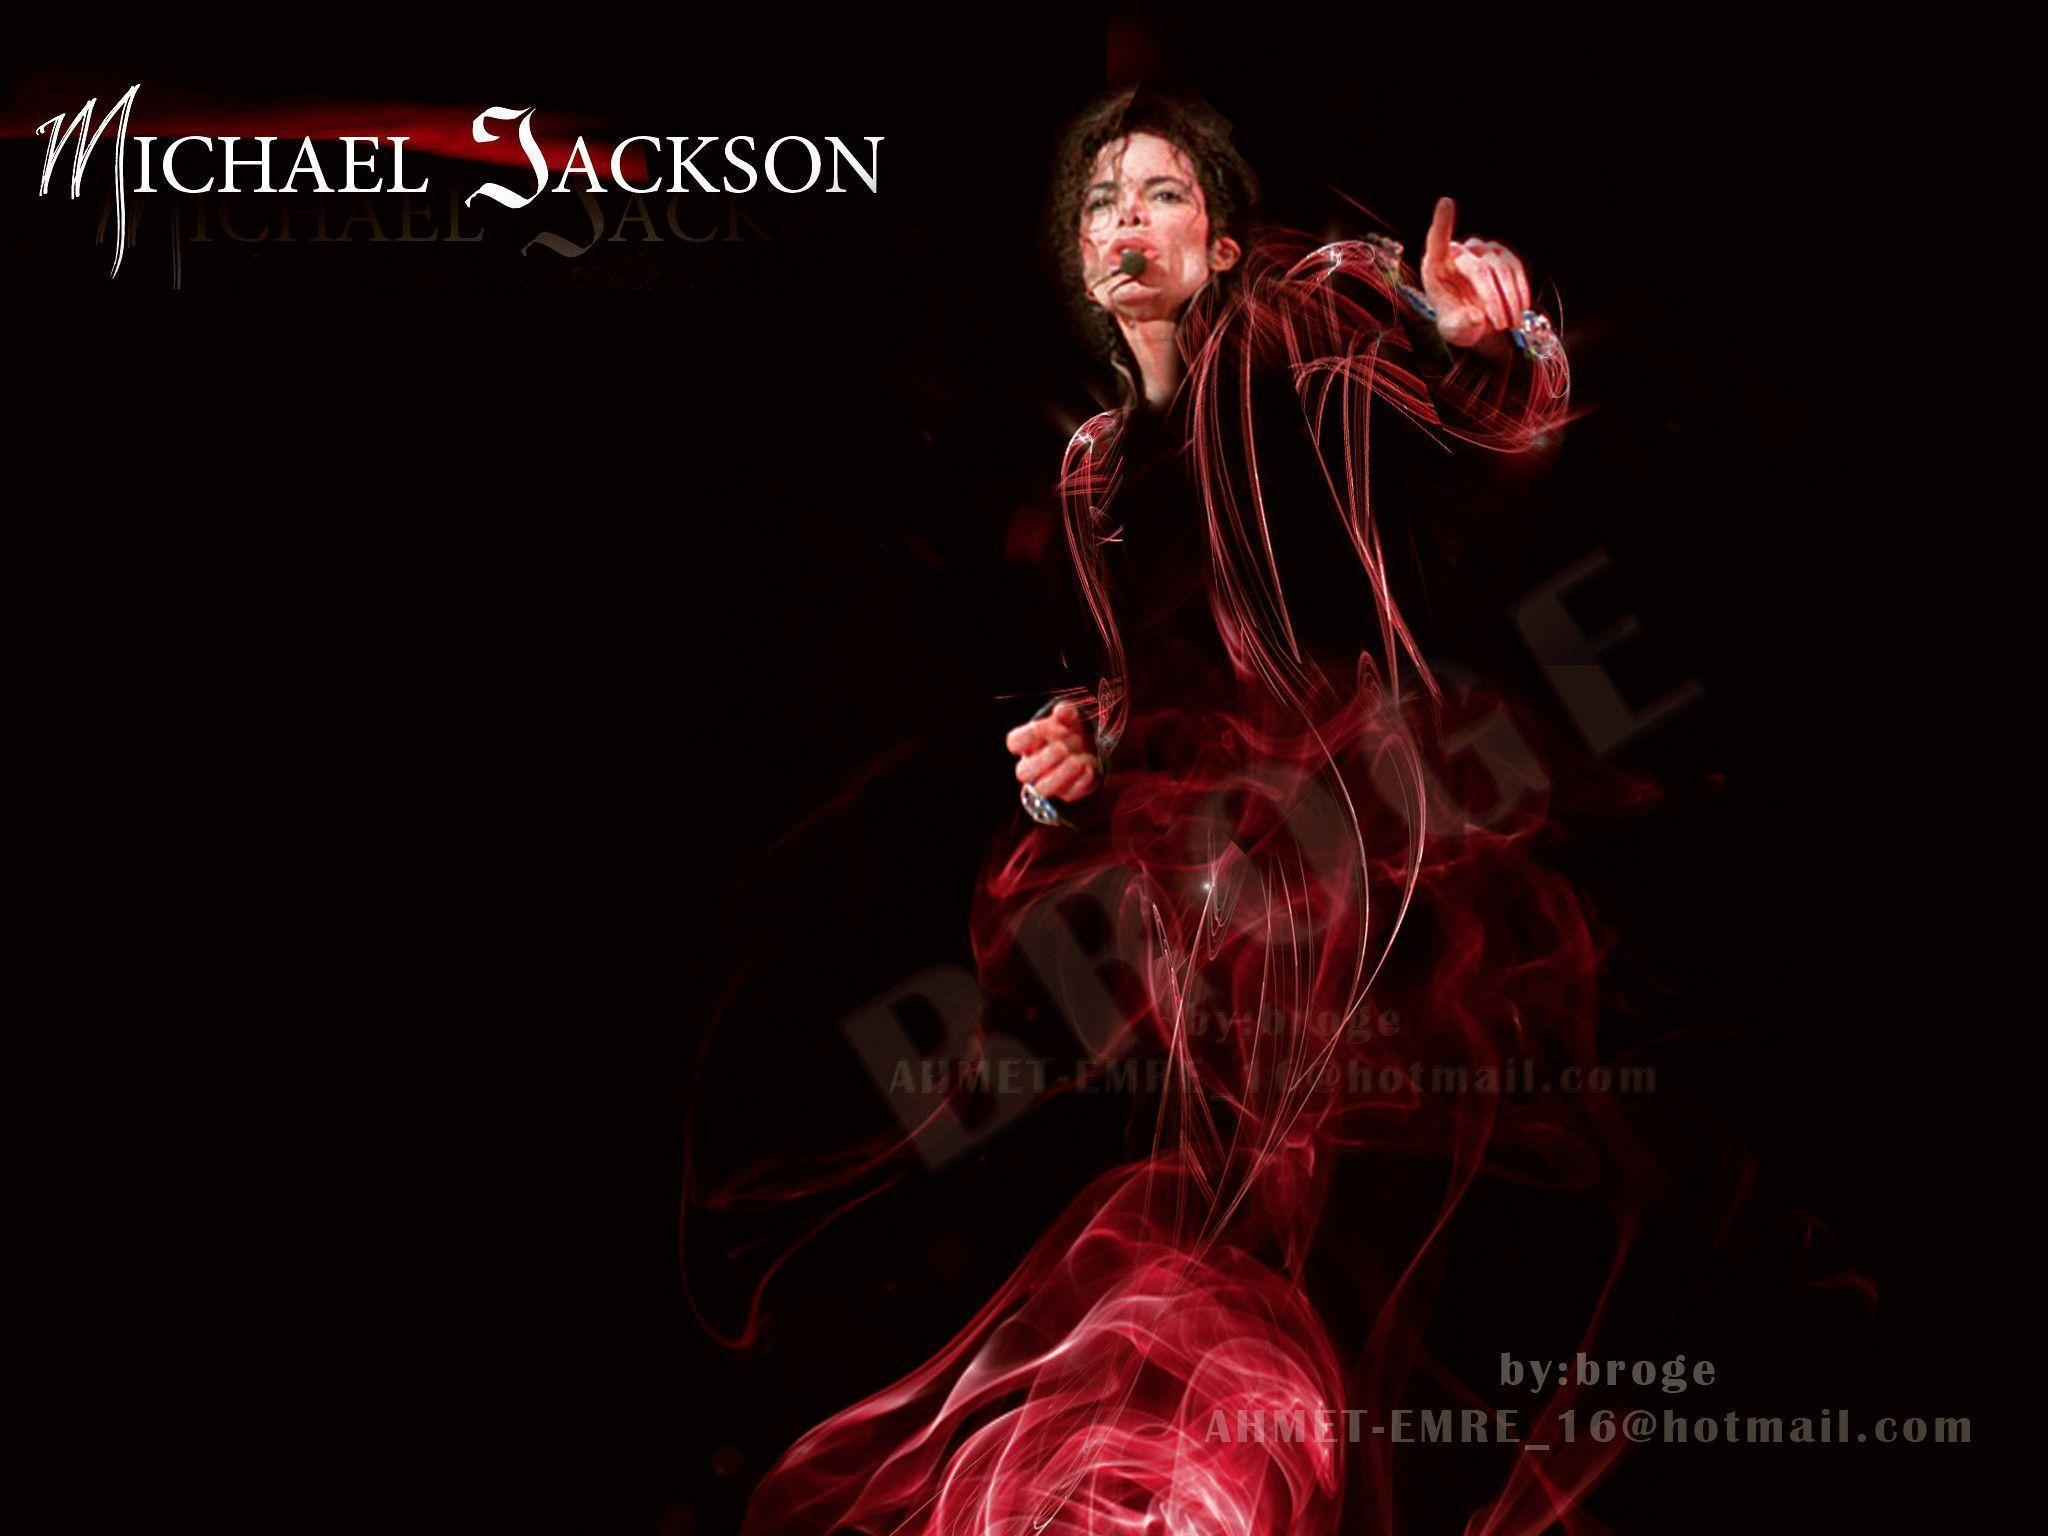 Michael Jackson HD Wallpaper 07 | hdwallpapers-